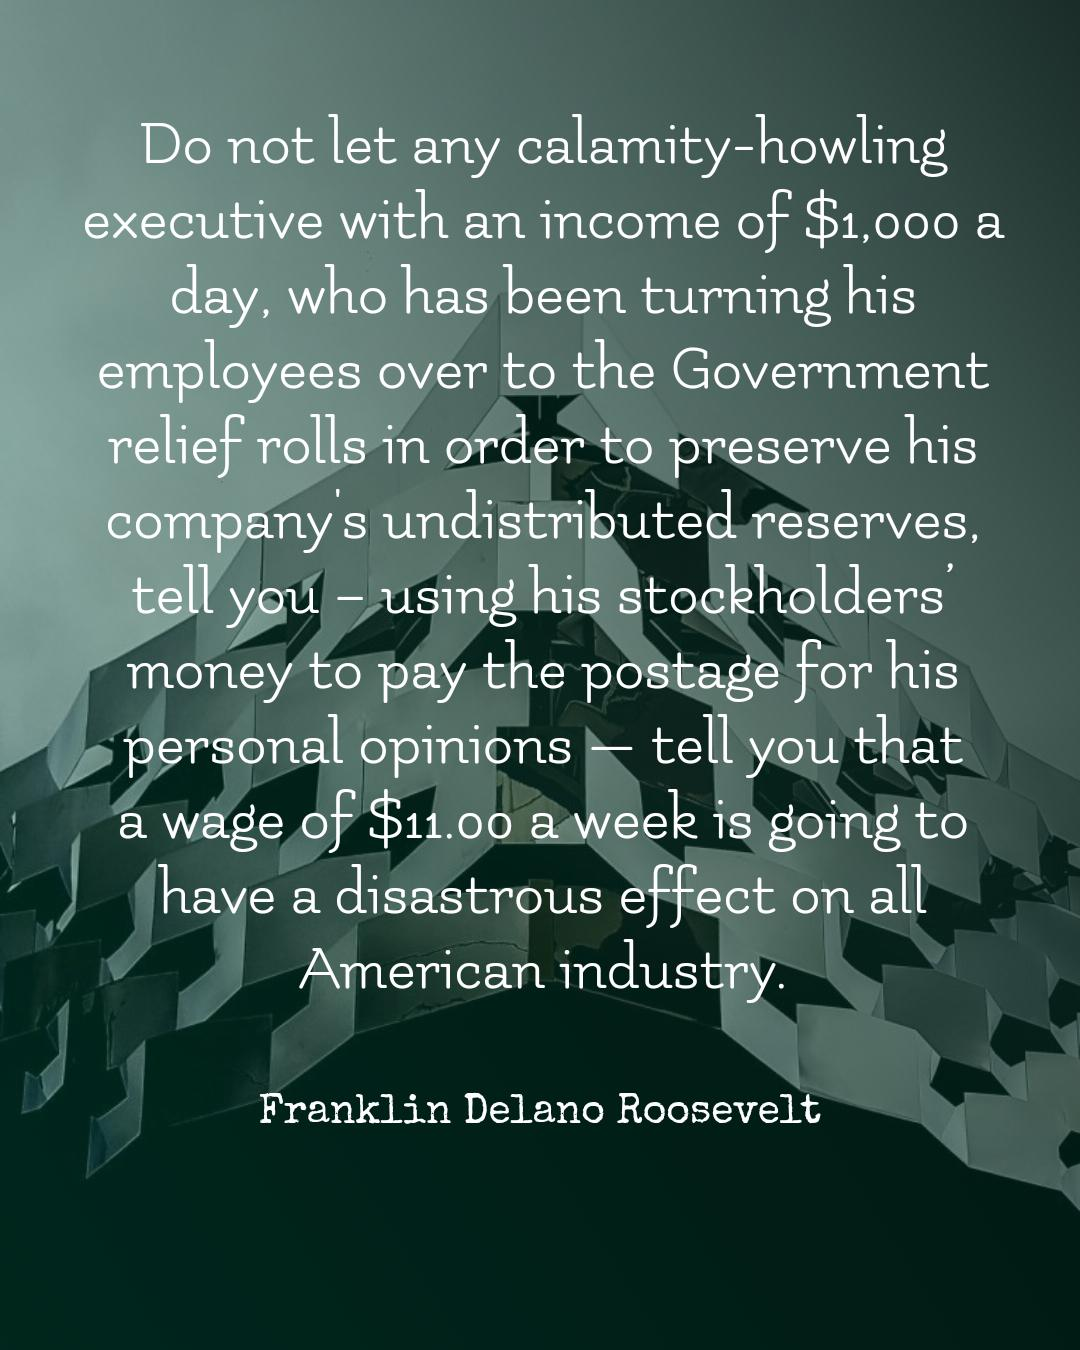 """Do not let any calamity-howling executive with an income of $1,000 a day . . ."" —Franklin Delano Roosevelt [1080×1350]"